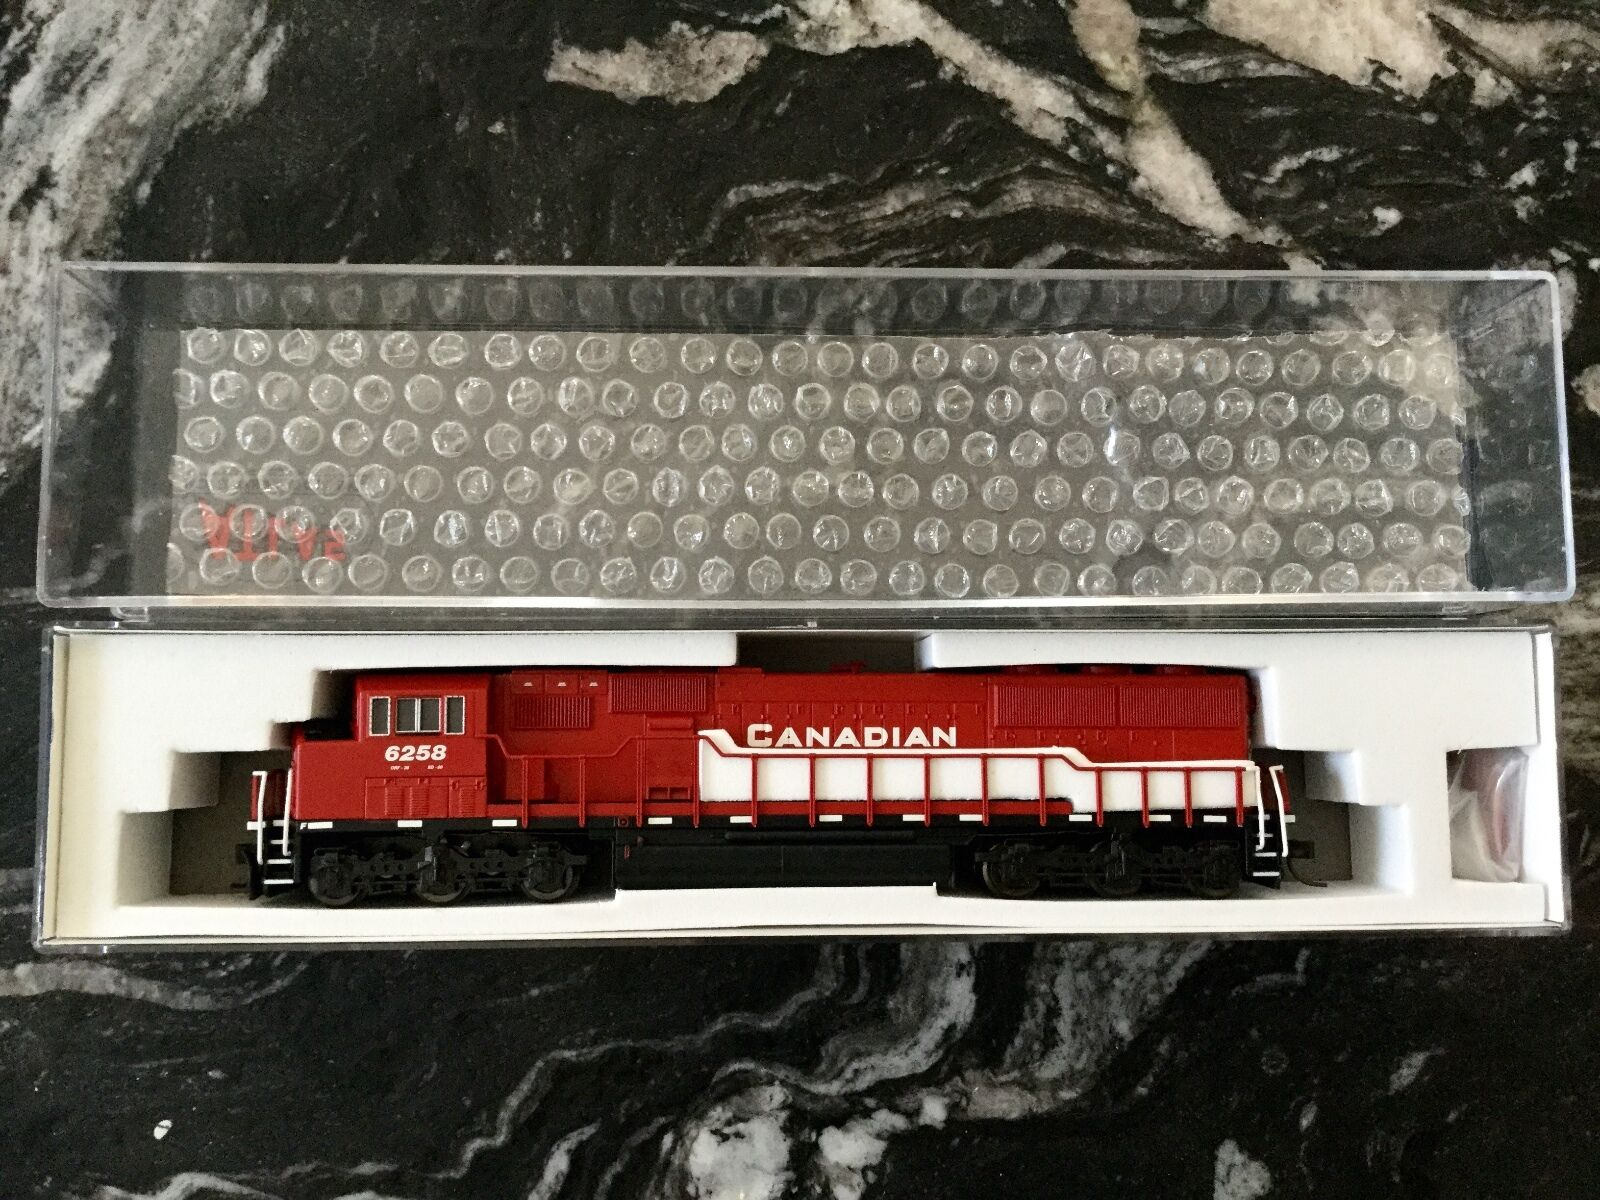 ATLAS 1 160 N SCALE SD-60M SD-60M SD-60M CANADIAN PACIFIC RD   6258 NCE FOR DCC   40002074 F S 7b7f57